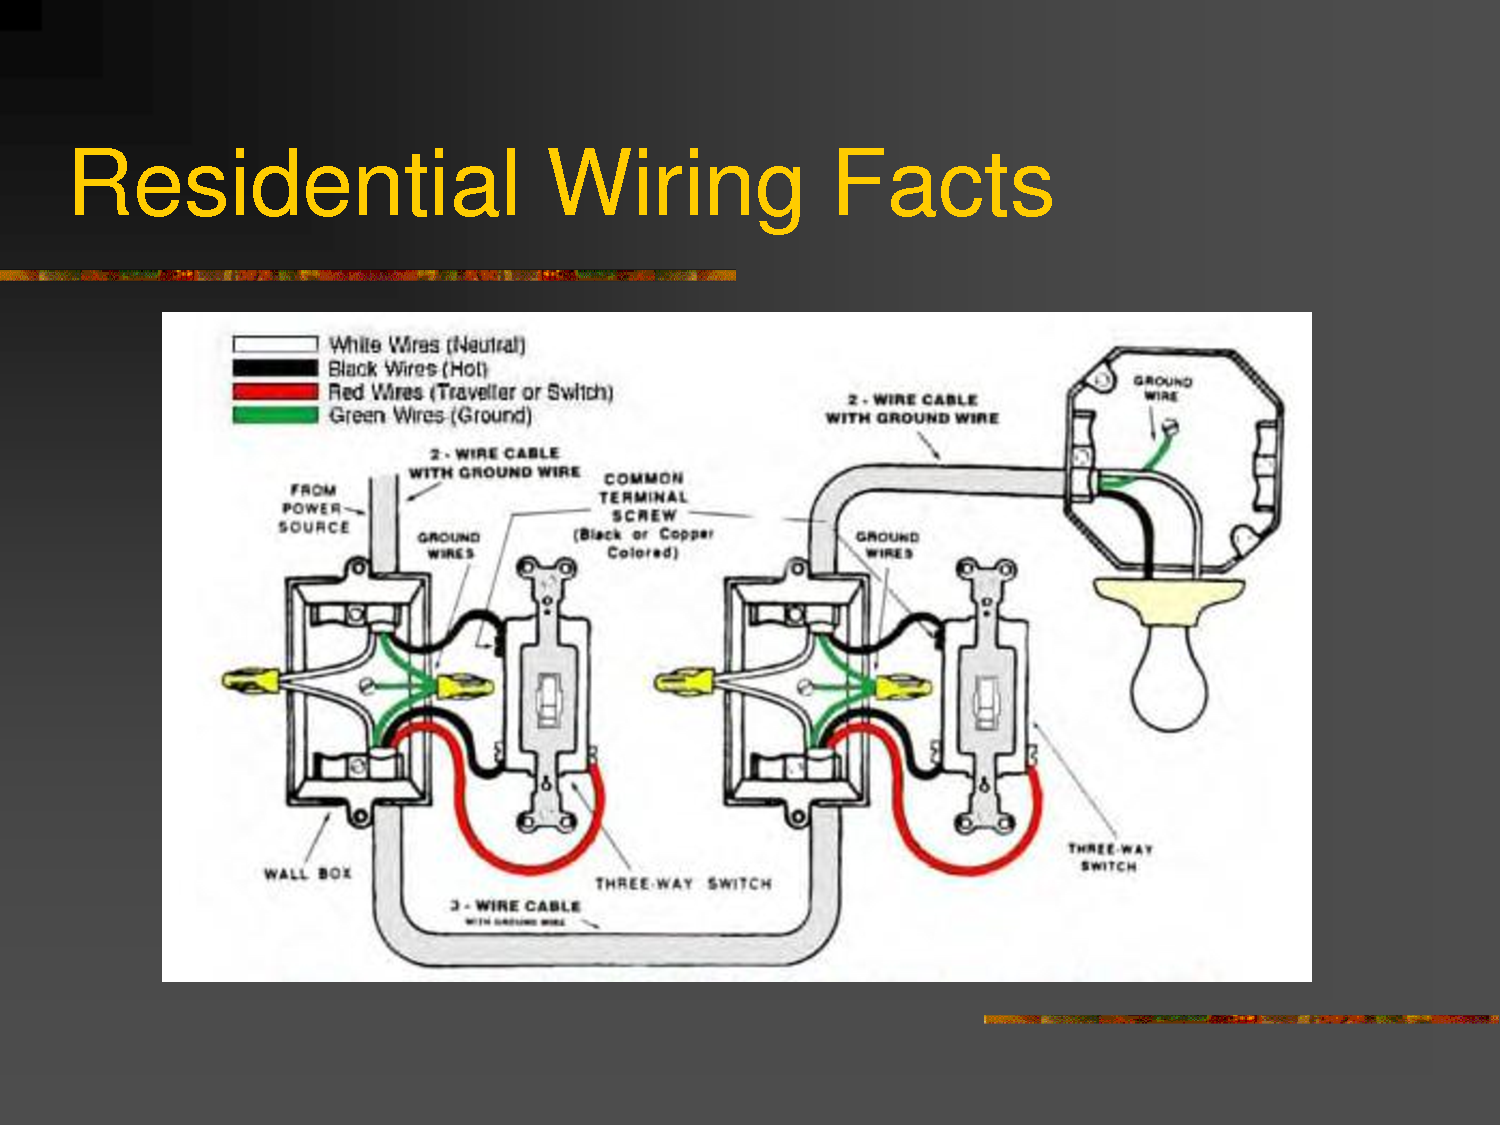 85f6d7068dddf27aa5737fc68962f04e 4 best images of residential wiring diagrams house electrical residential electrical wiring diagrams at soozxer.org